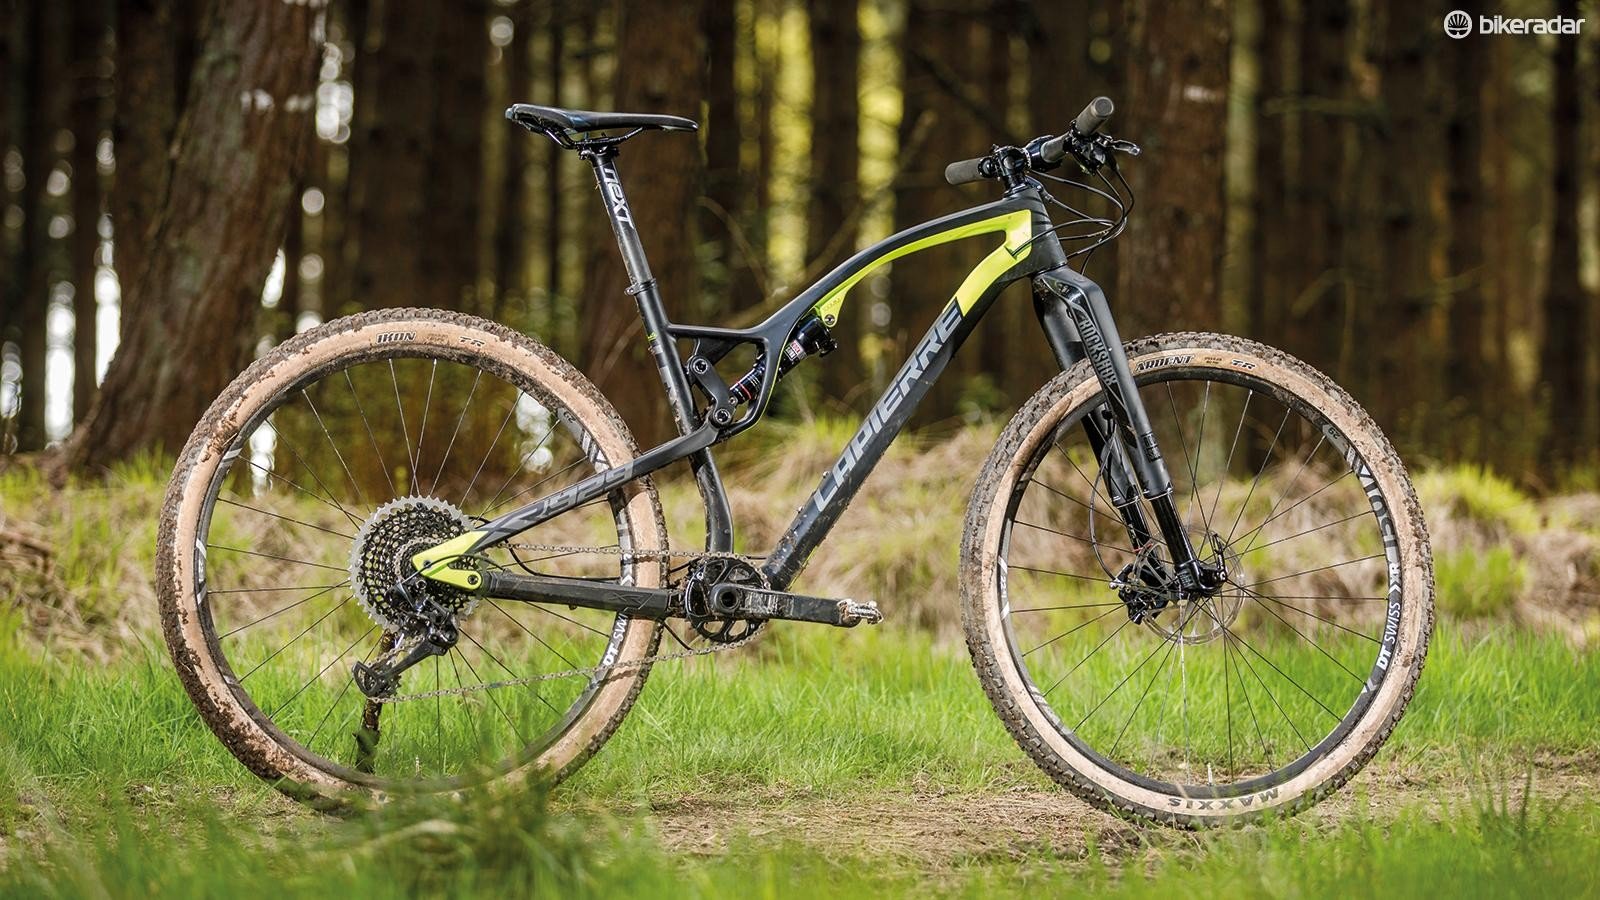 The Lapierre XR 929 Ultimate